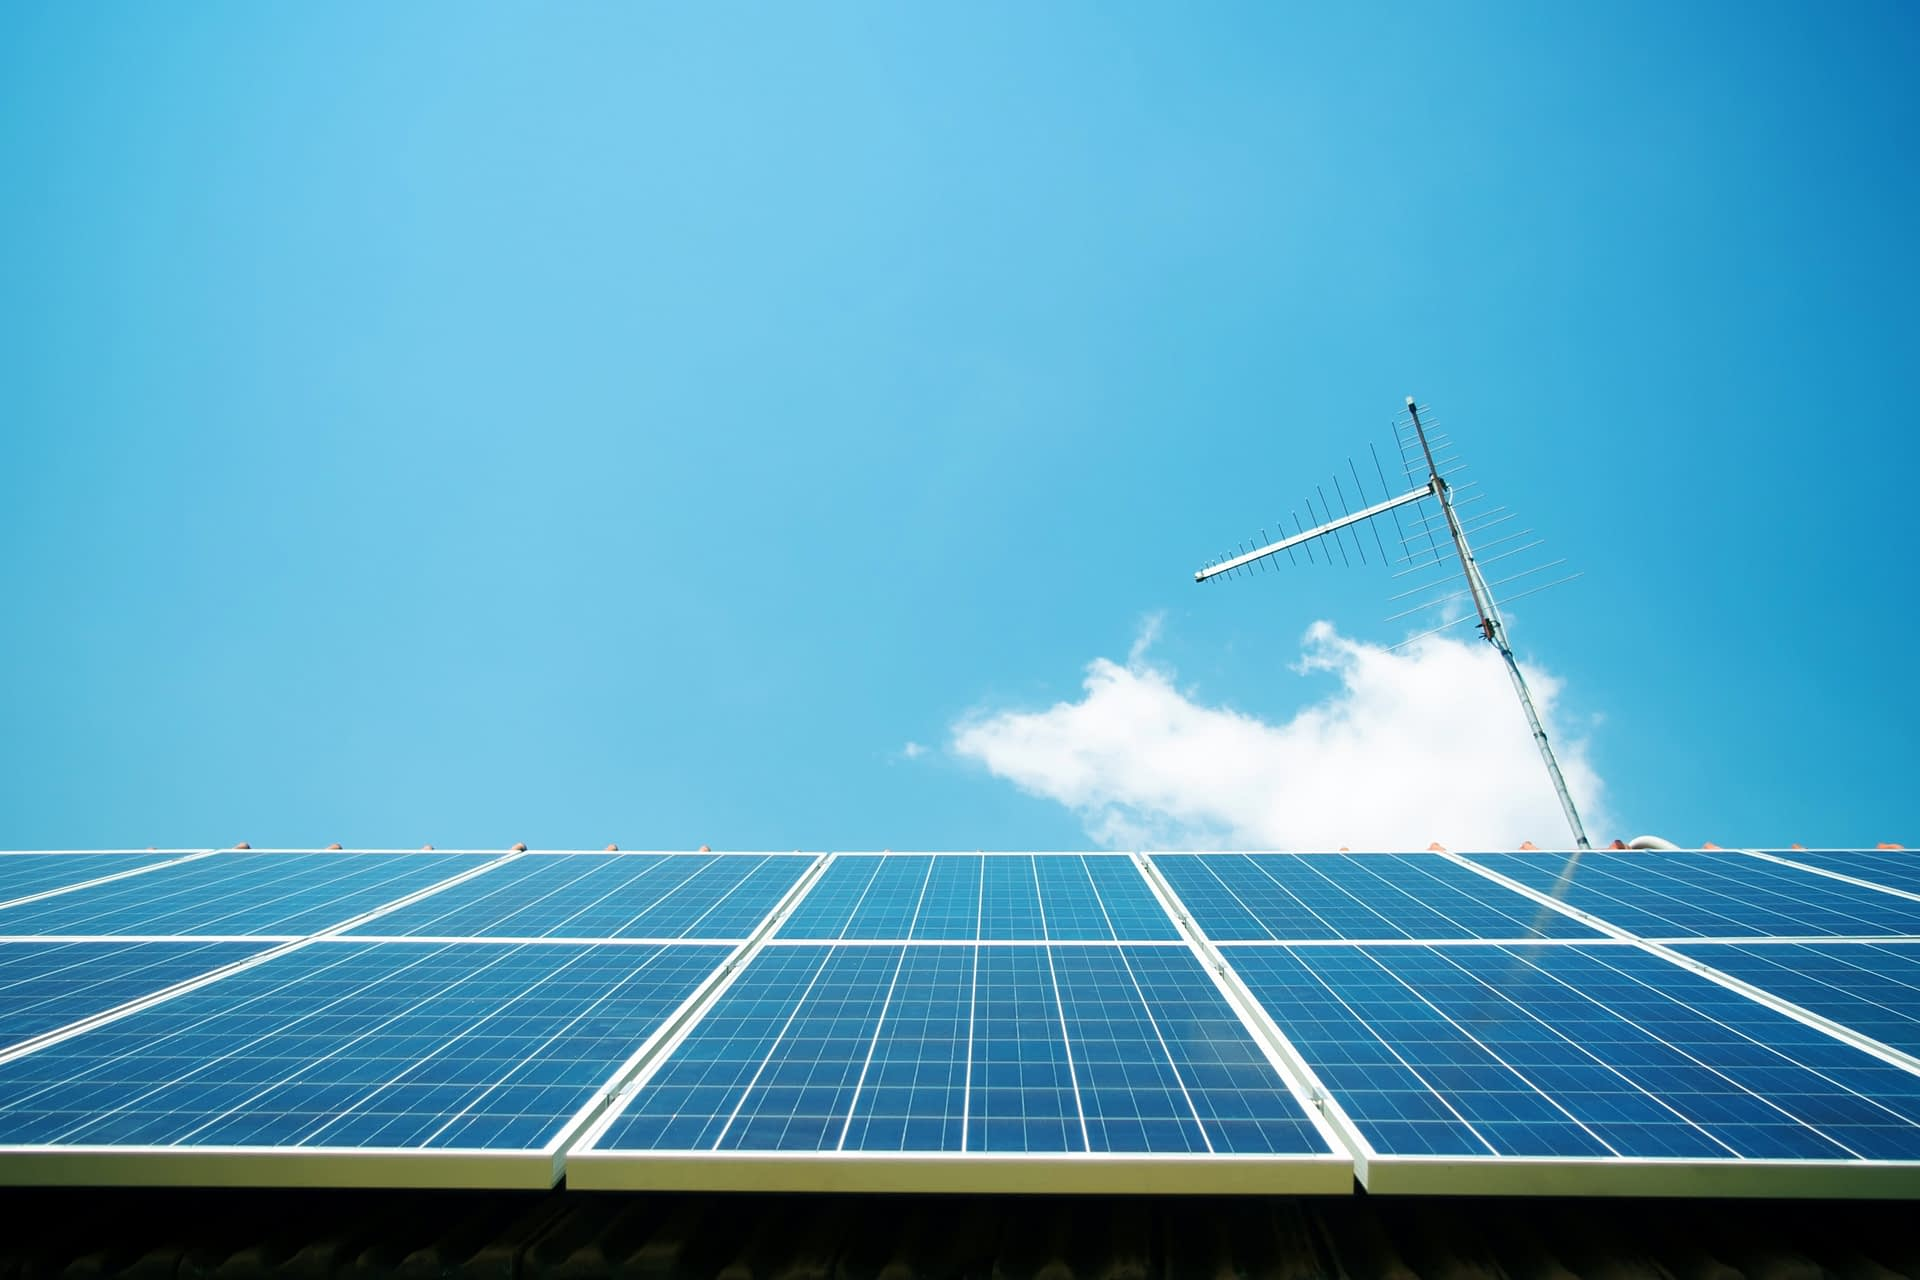 Renewable energy for prisons